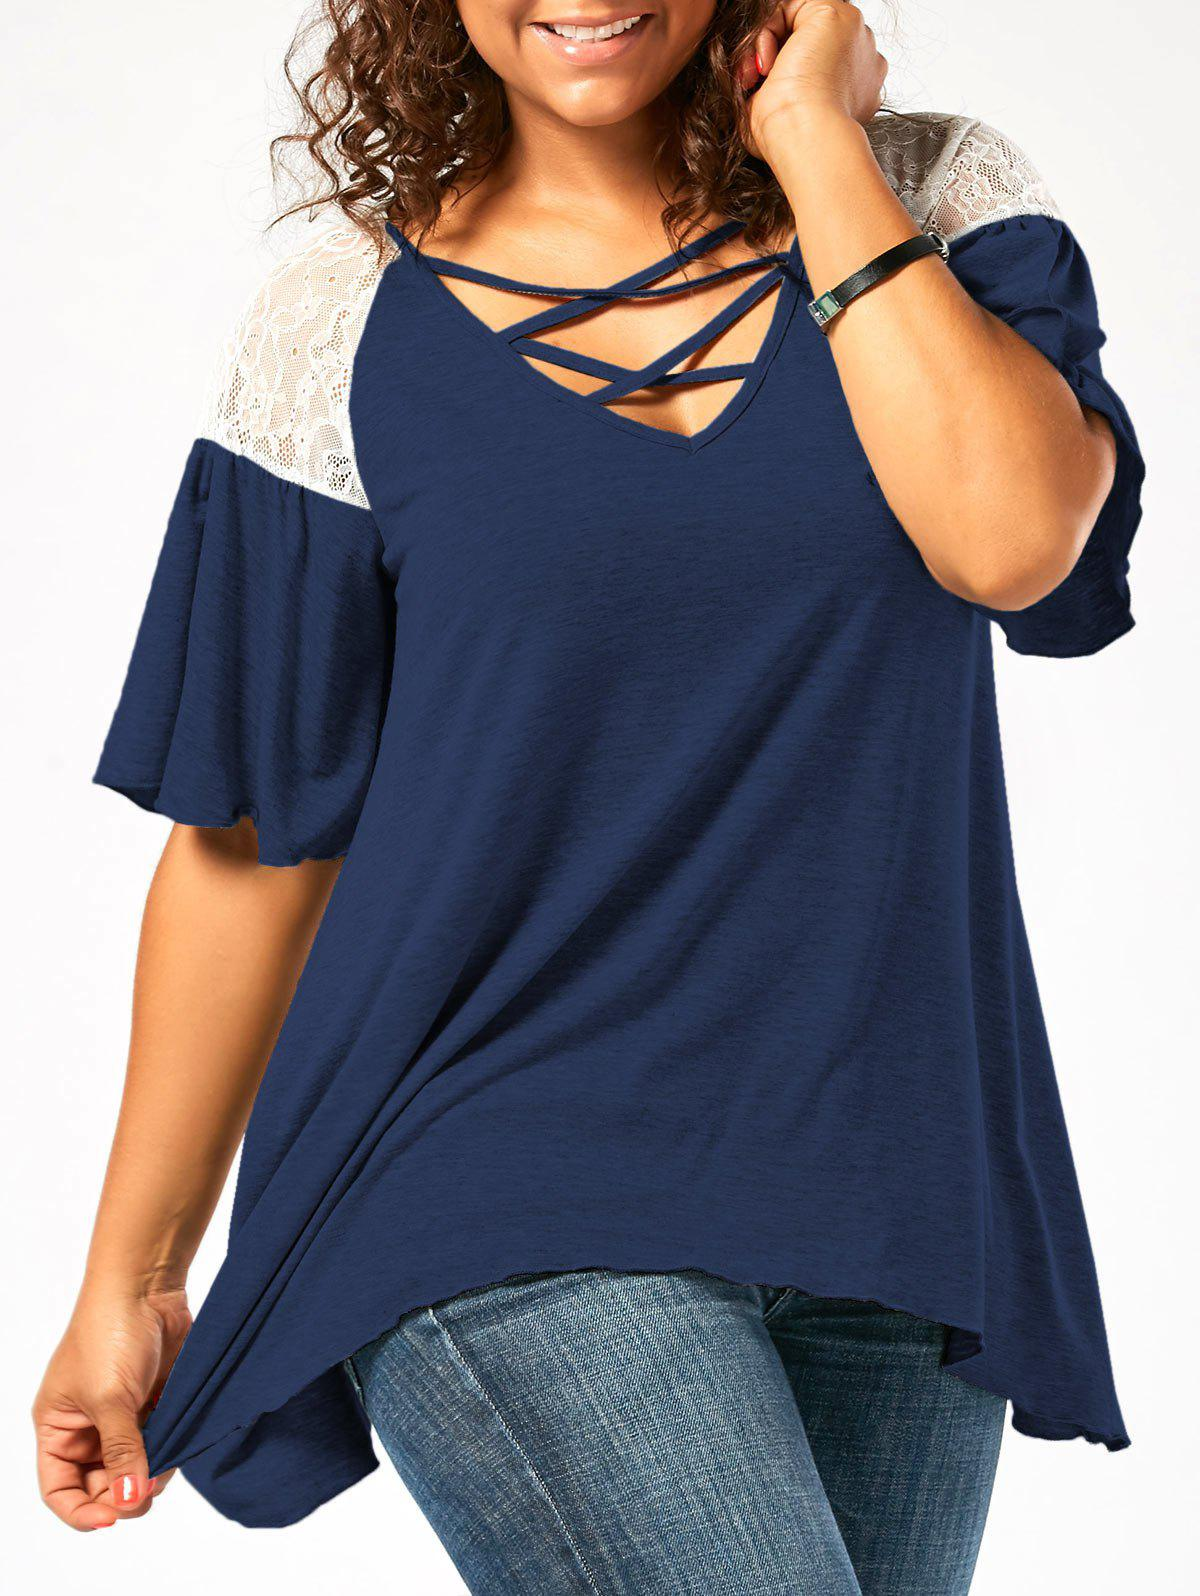 Criss Cross Drop Shoulder Plus Size Tunic T-ShirtWOMEN<br><br>Size: 4XL; Color: CERULEAN; Material: Polyester,Spandex; Shirt Length: Regular; Sleeve Length: Half; Collar: V-Neck; Style: Casual; Season: Fall,Spring,Summer; Sleeve Type: Flare Sleeve; Embellishment: Lace; Pattern Type: Solid; Elasticity: Elastic; Weight: 0.2600kg; Package Contents: 1 x T-Shirt;